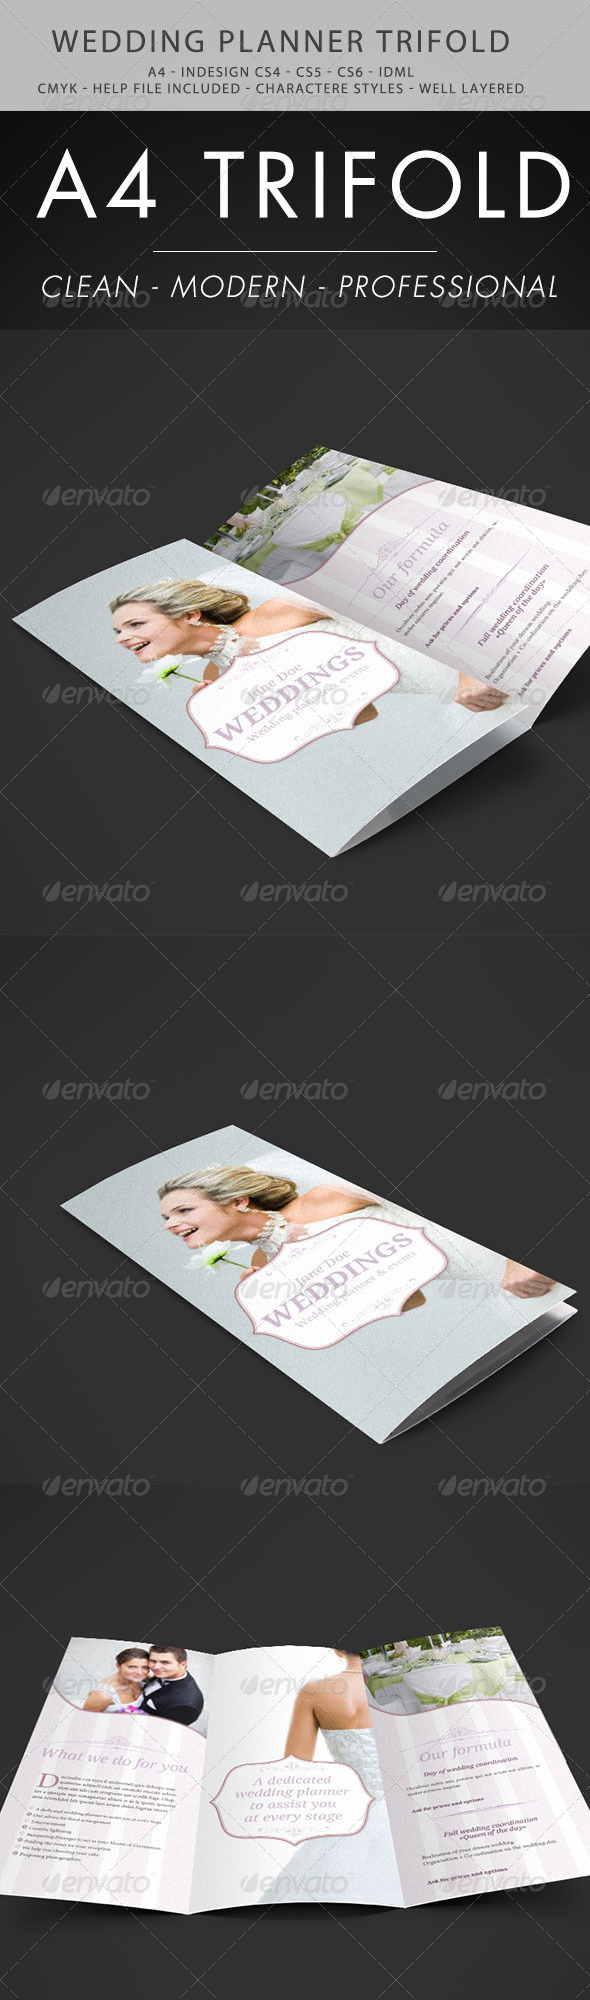 GraphicRiver Wedding Planner Trifold 3861949